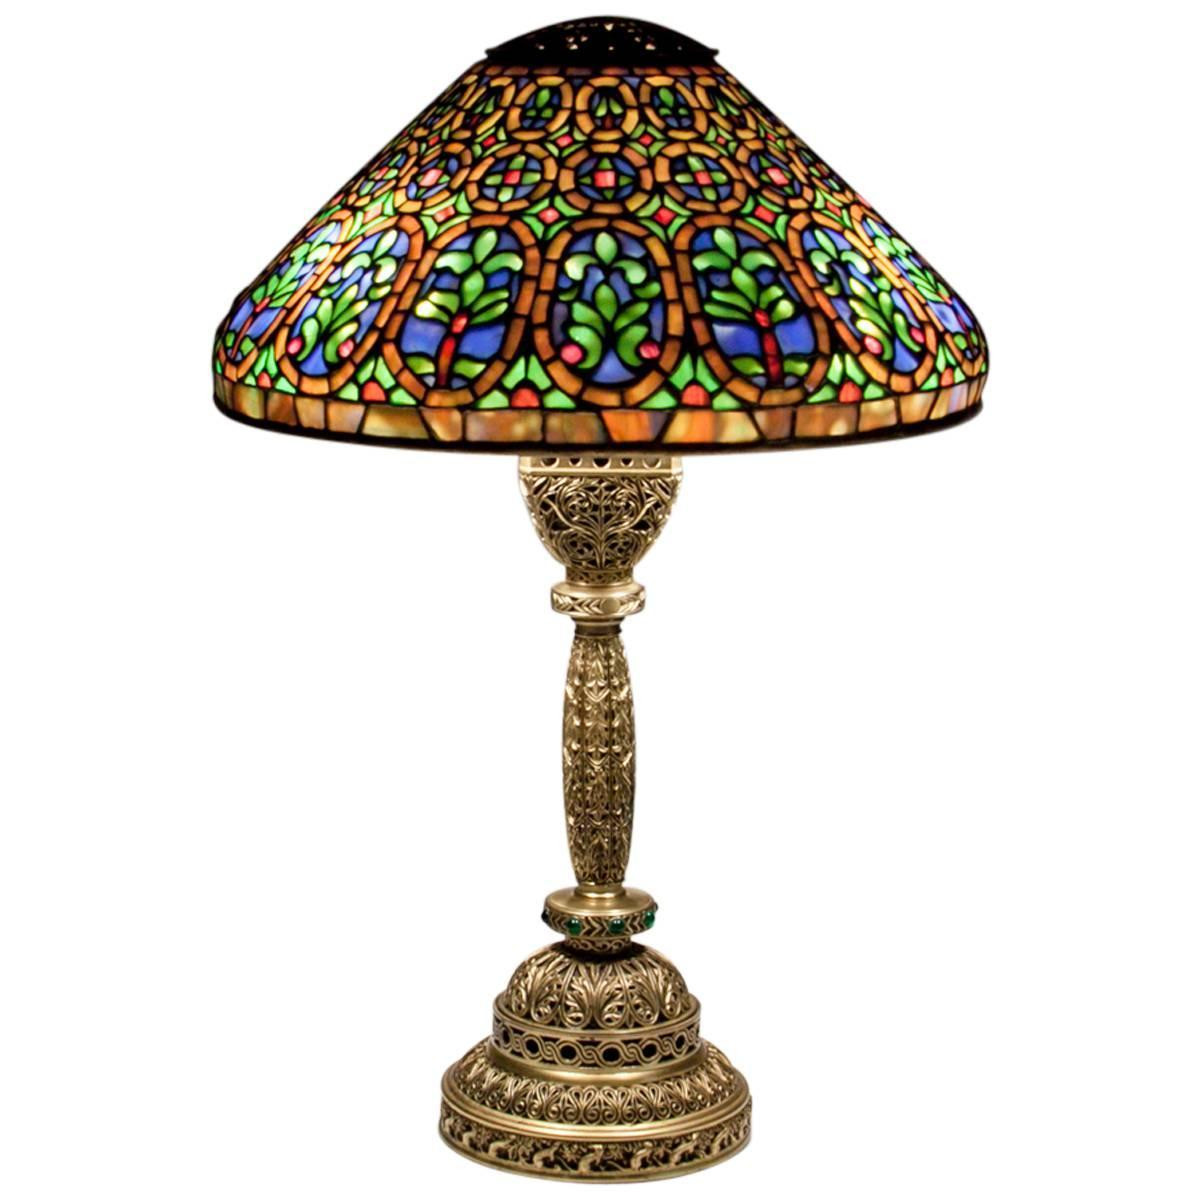 Best ideas about Tiffany Desk Lamp . Save or Pin Tiffany Studios Venetian Desk Lamp at 1stdibs Now.